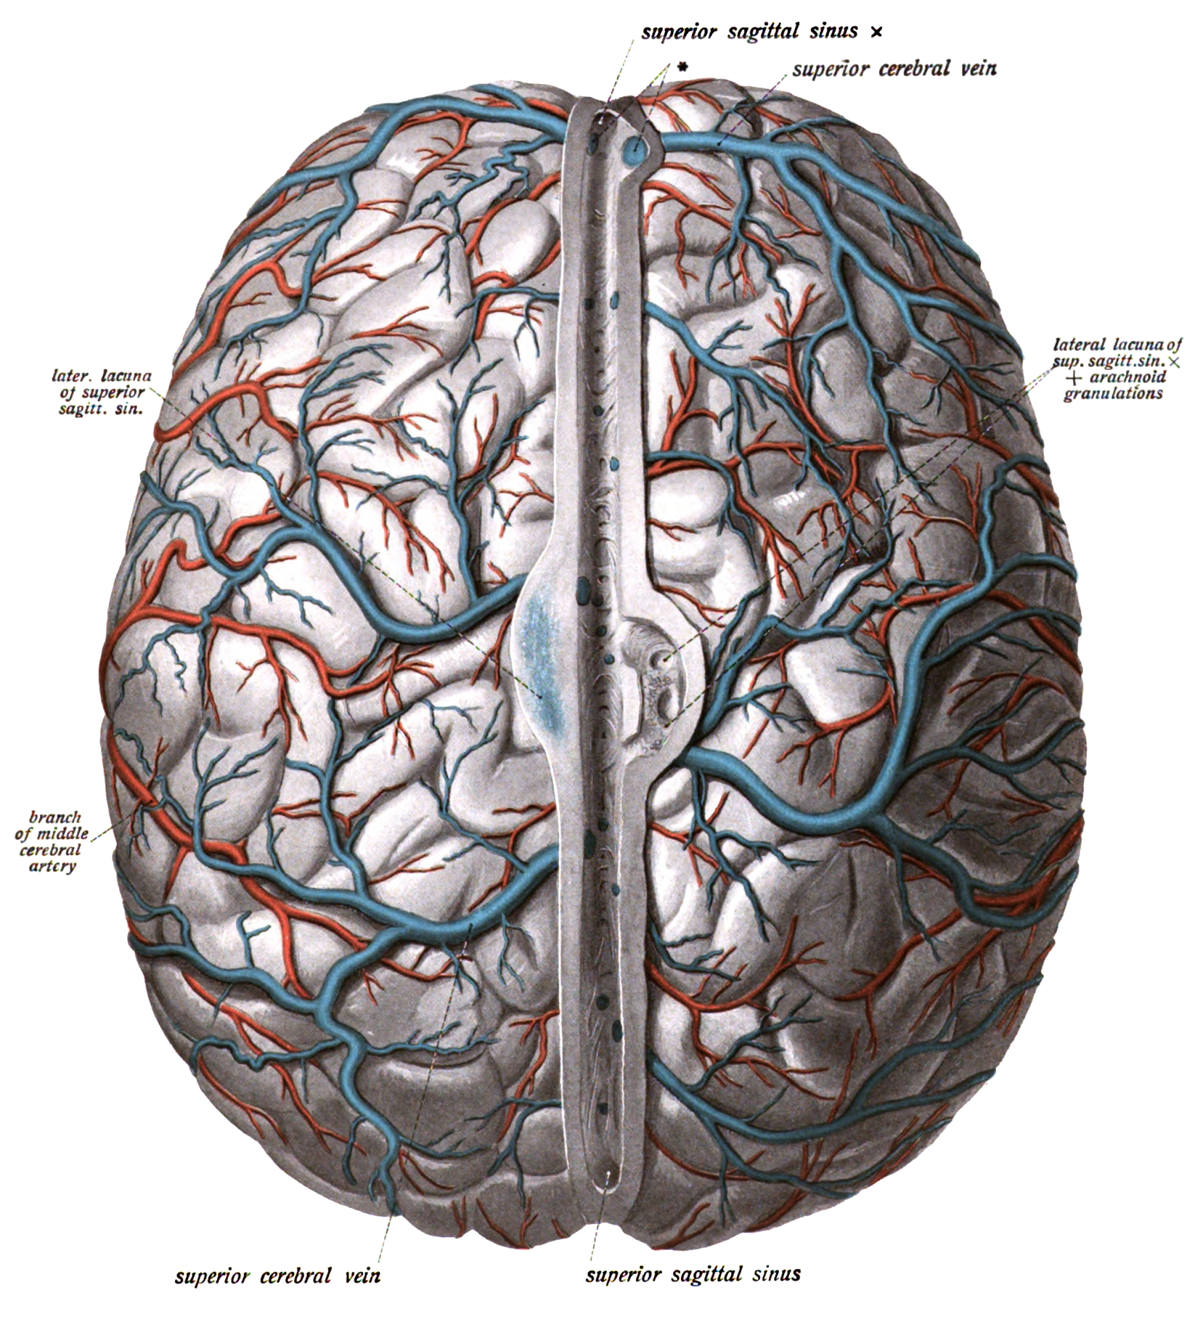 Superior cerebral veins - Wikipedia